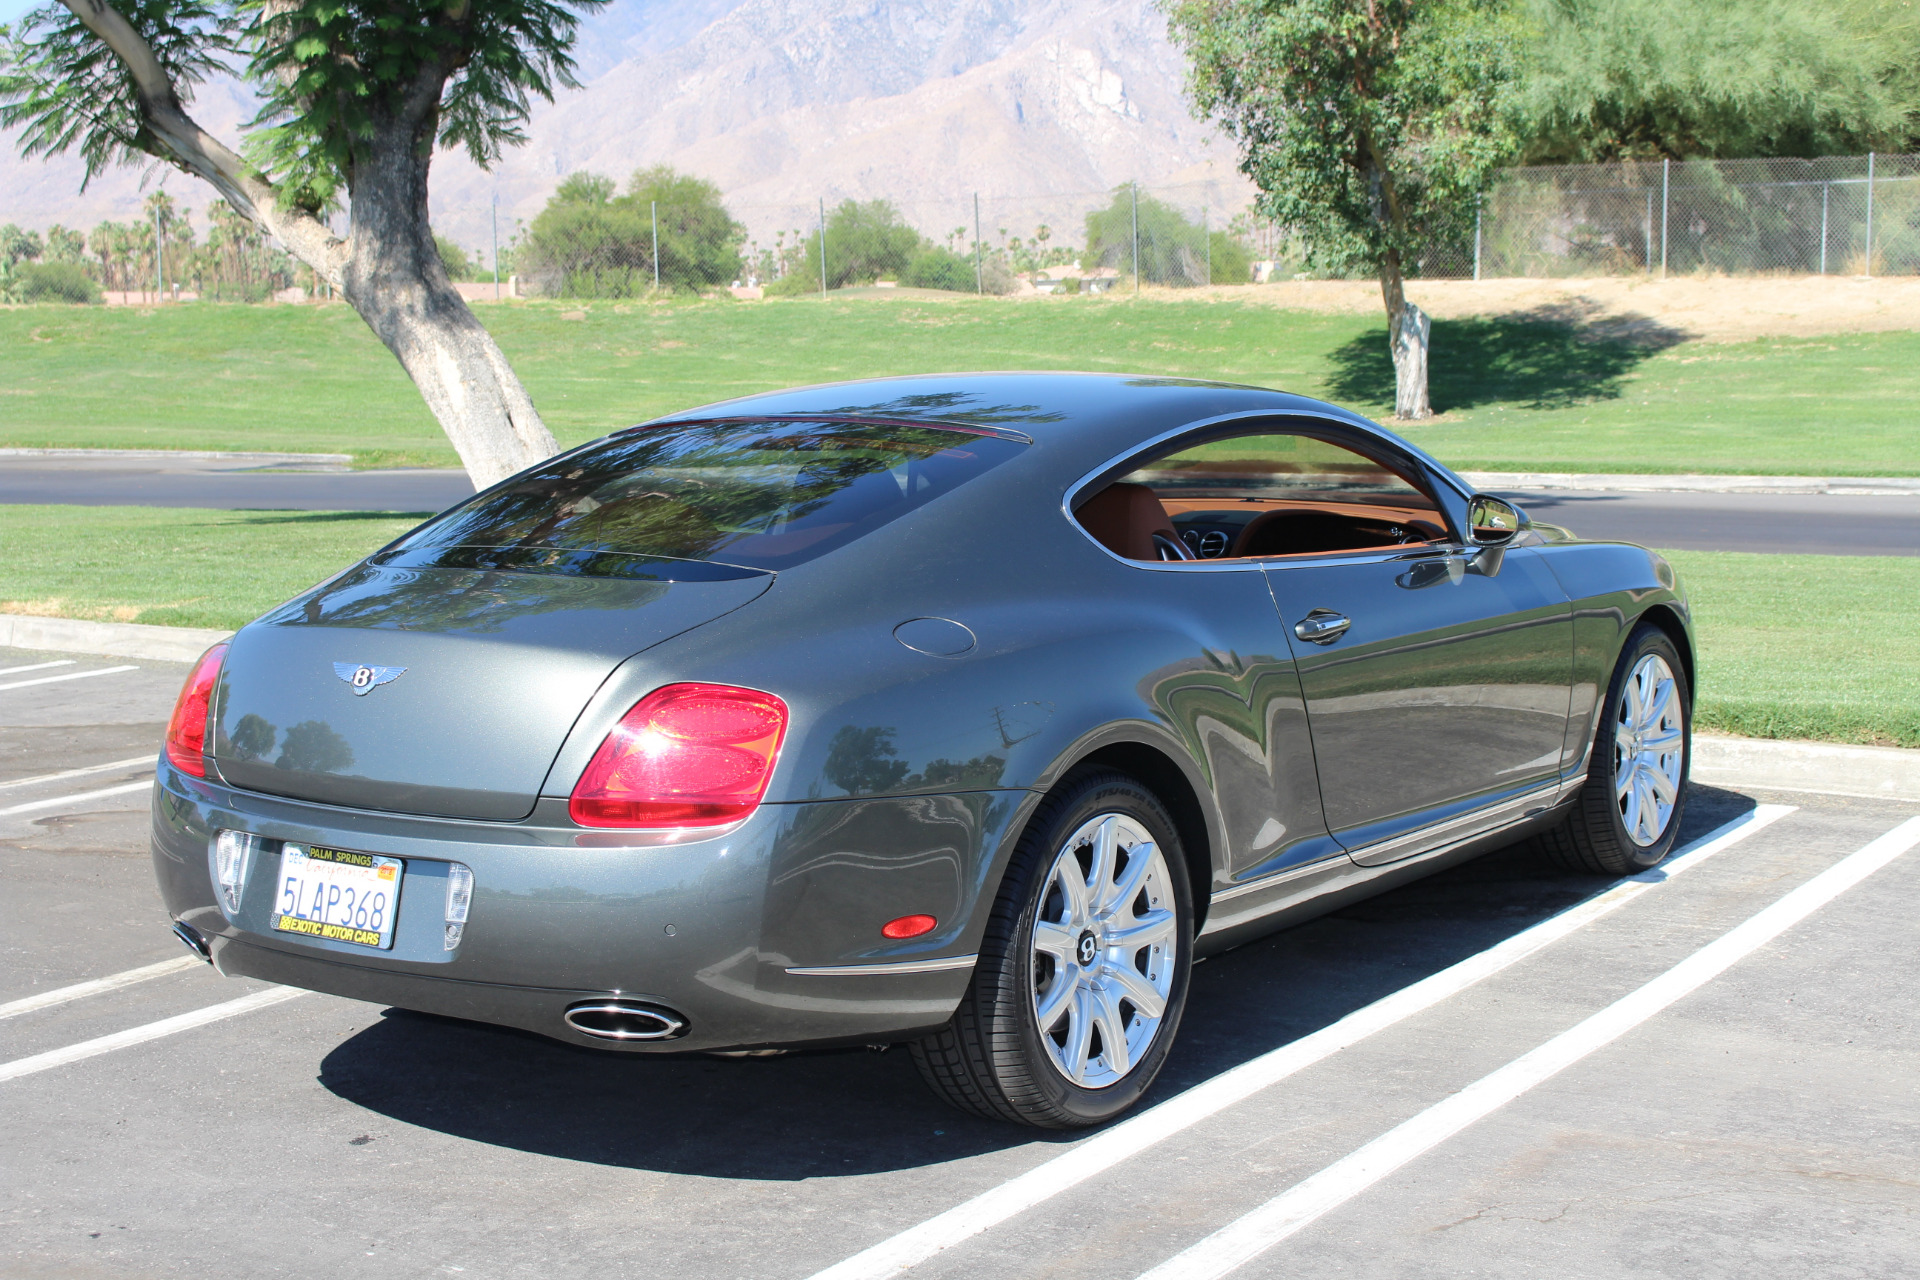 Used-2005-Bentley-Continental-GT-Turbo